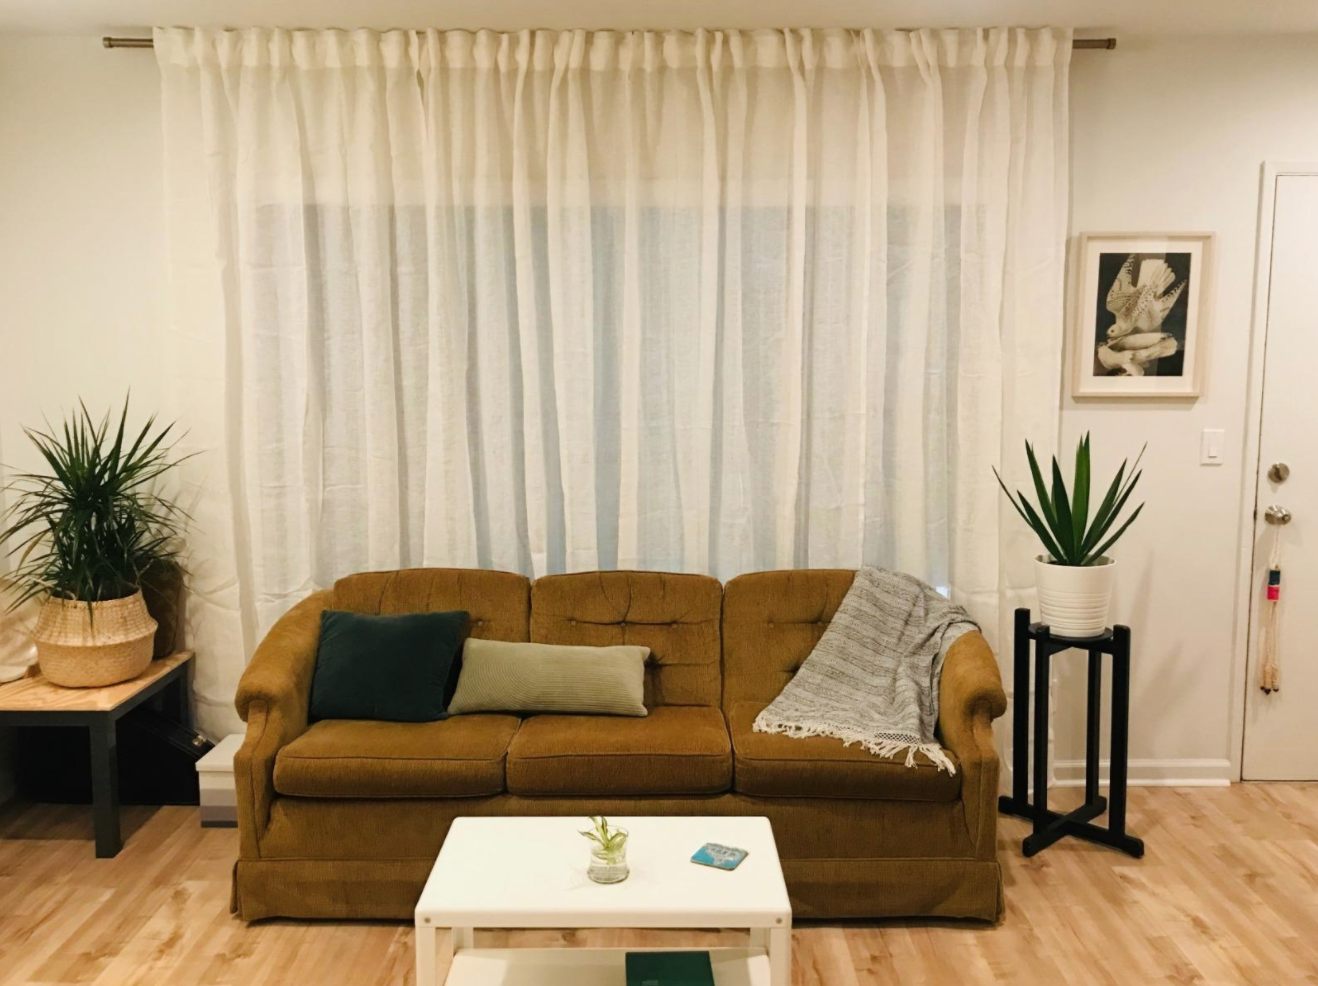 A reviewer's living room with the curtain rod